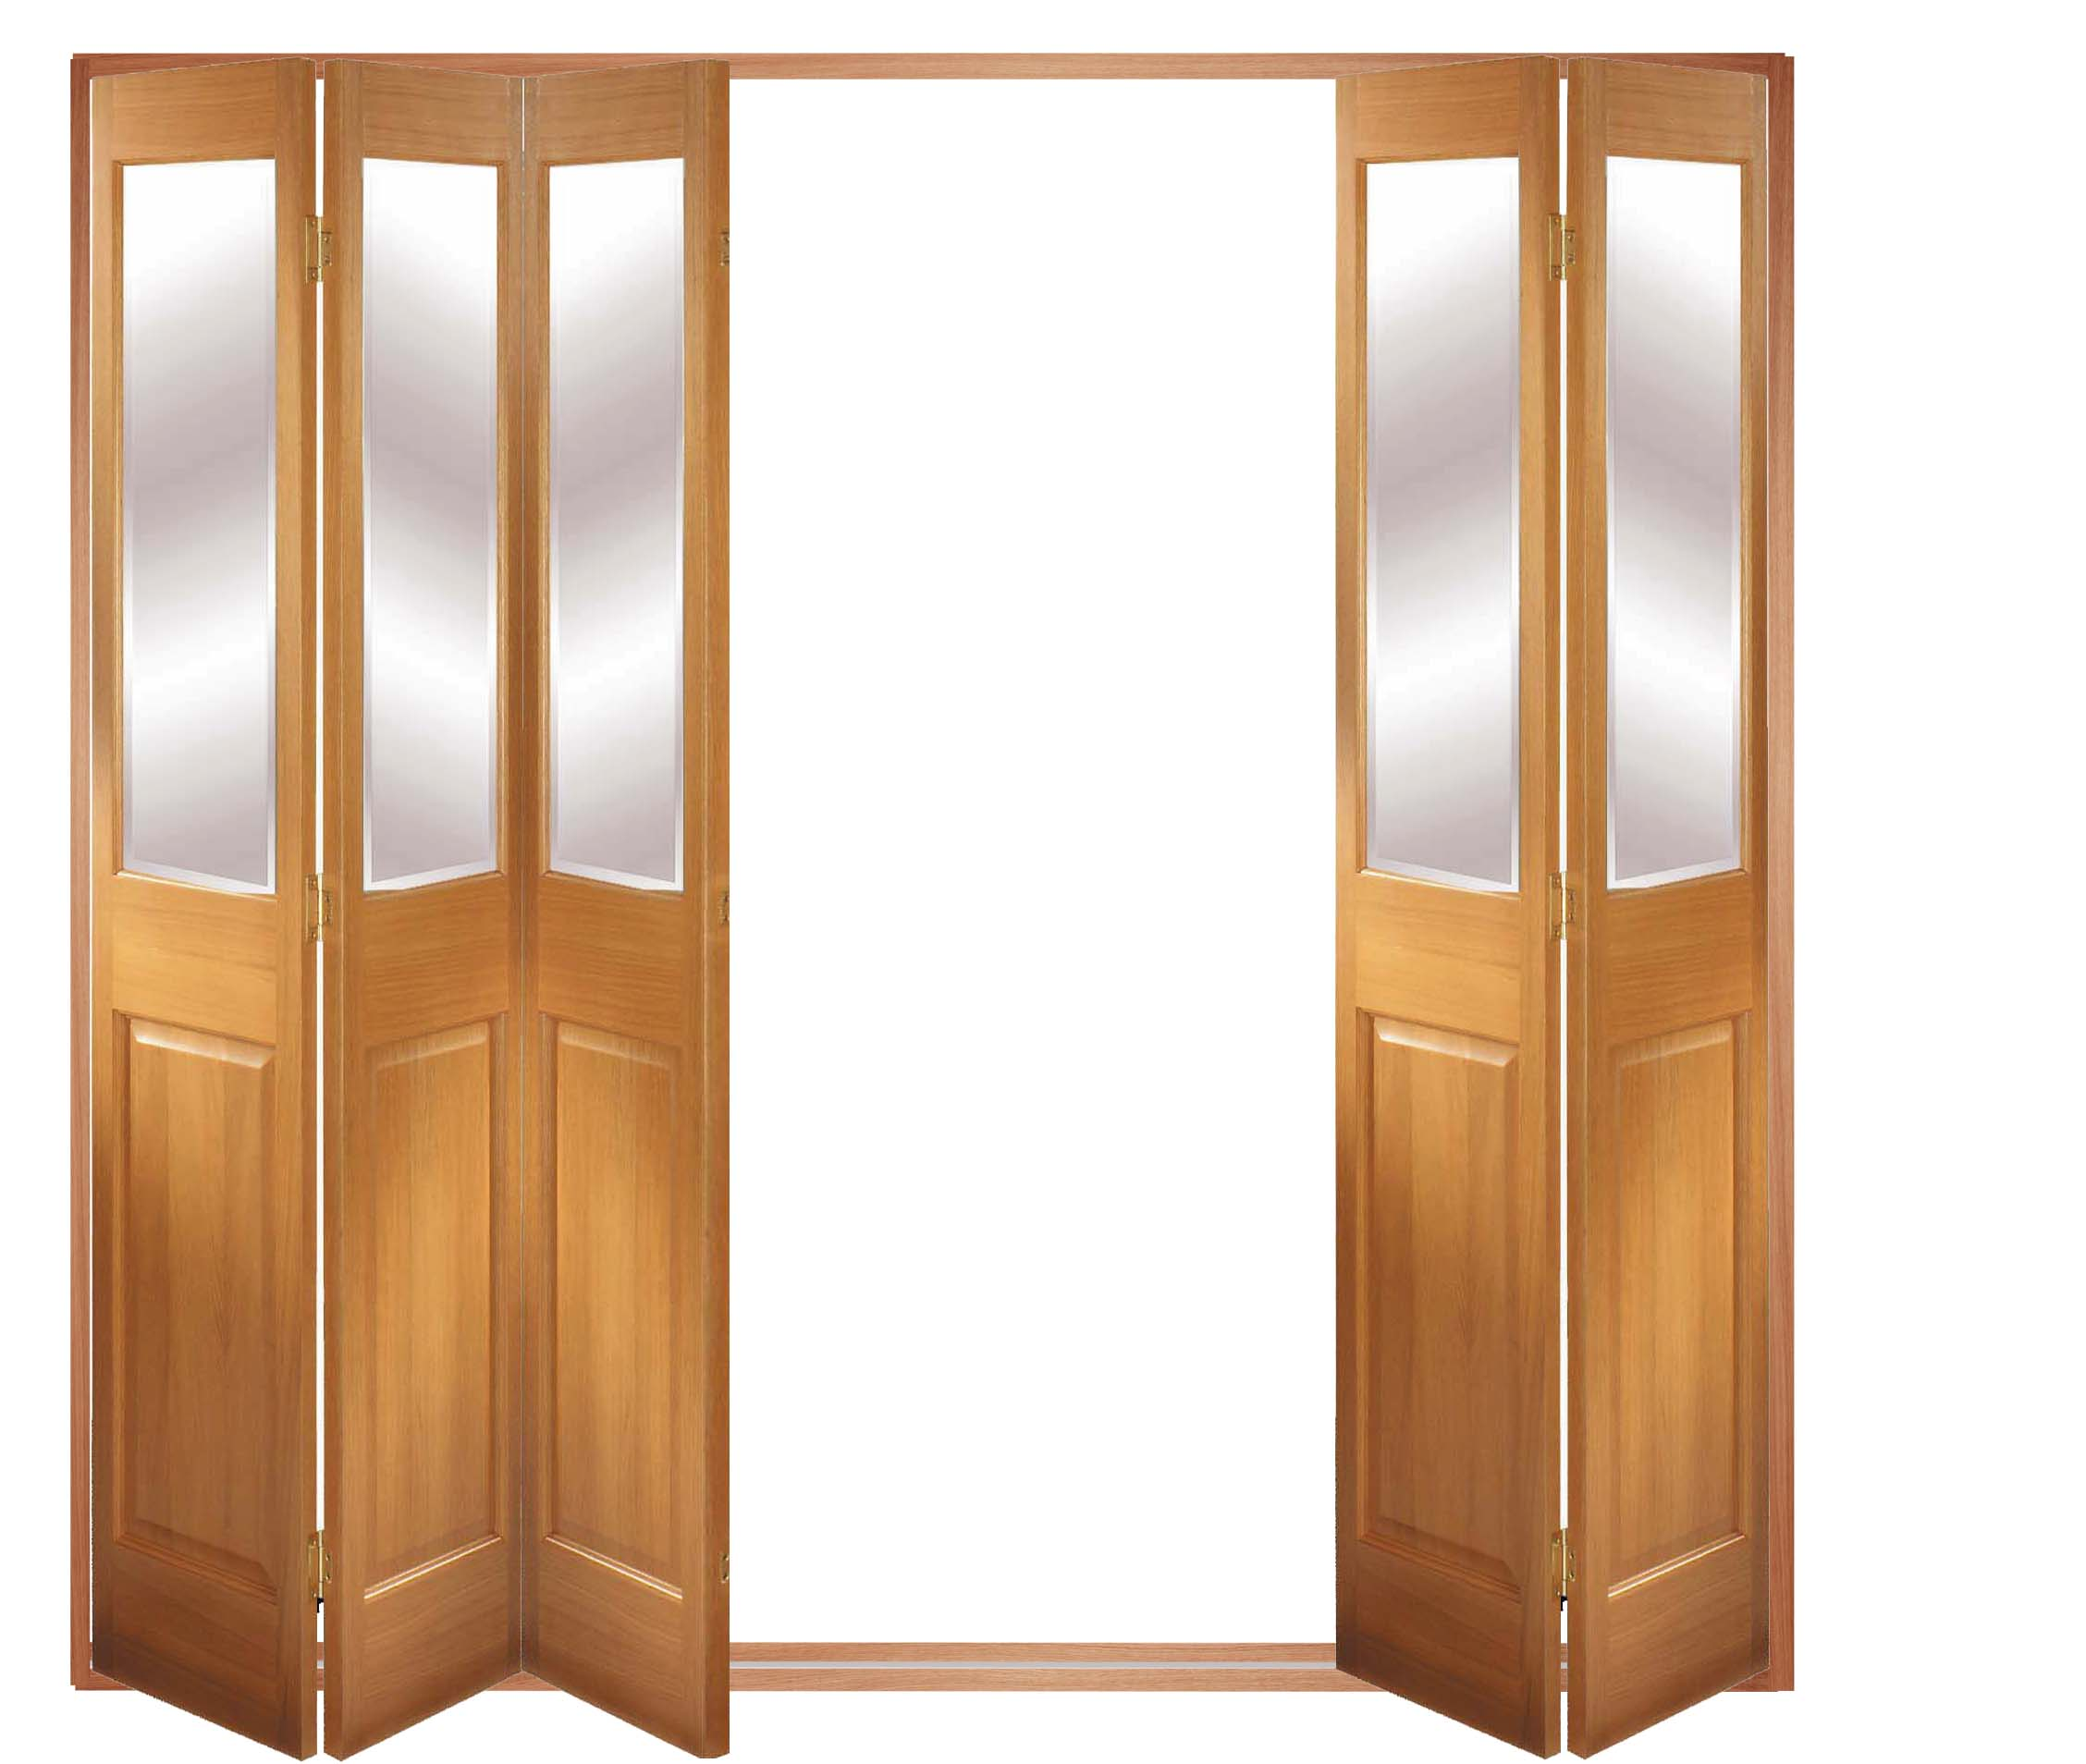 Reasons to install interior sliding folding doors for Interior folding doors